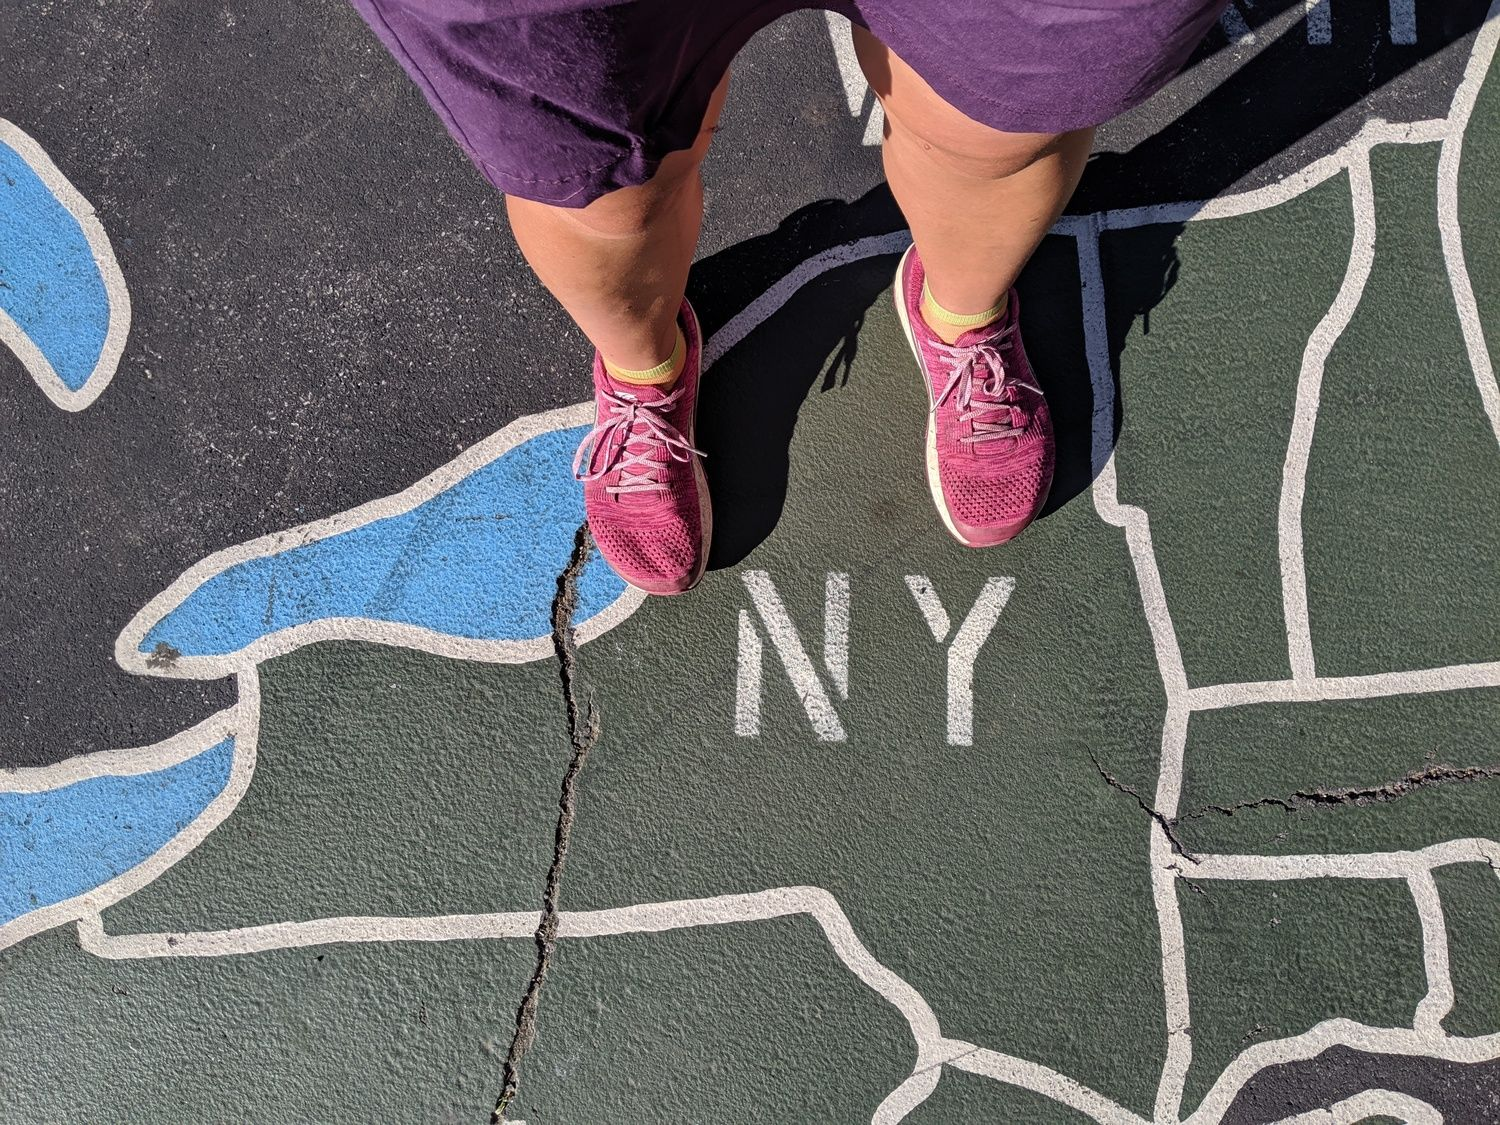 Liz Thomas wearing the Altra Paradigm on a painted sidewalk in New York City.